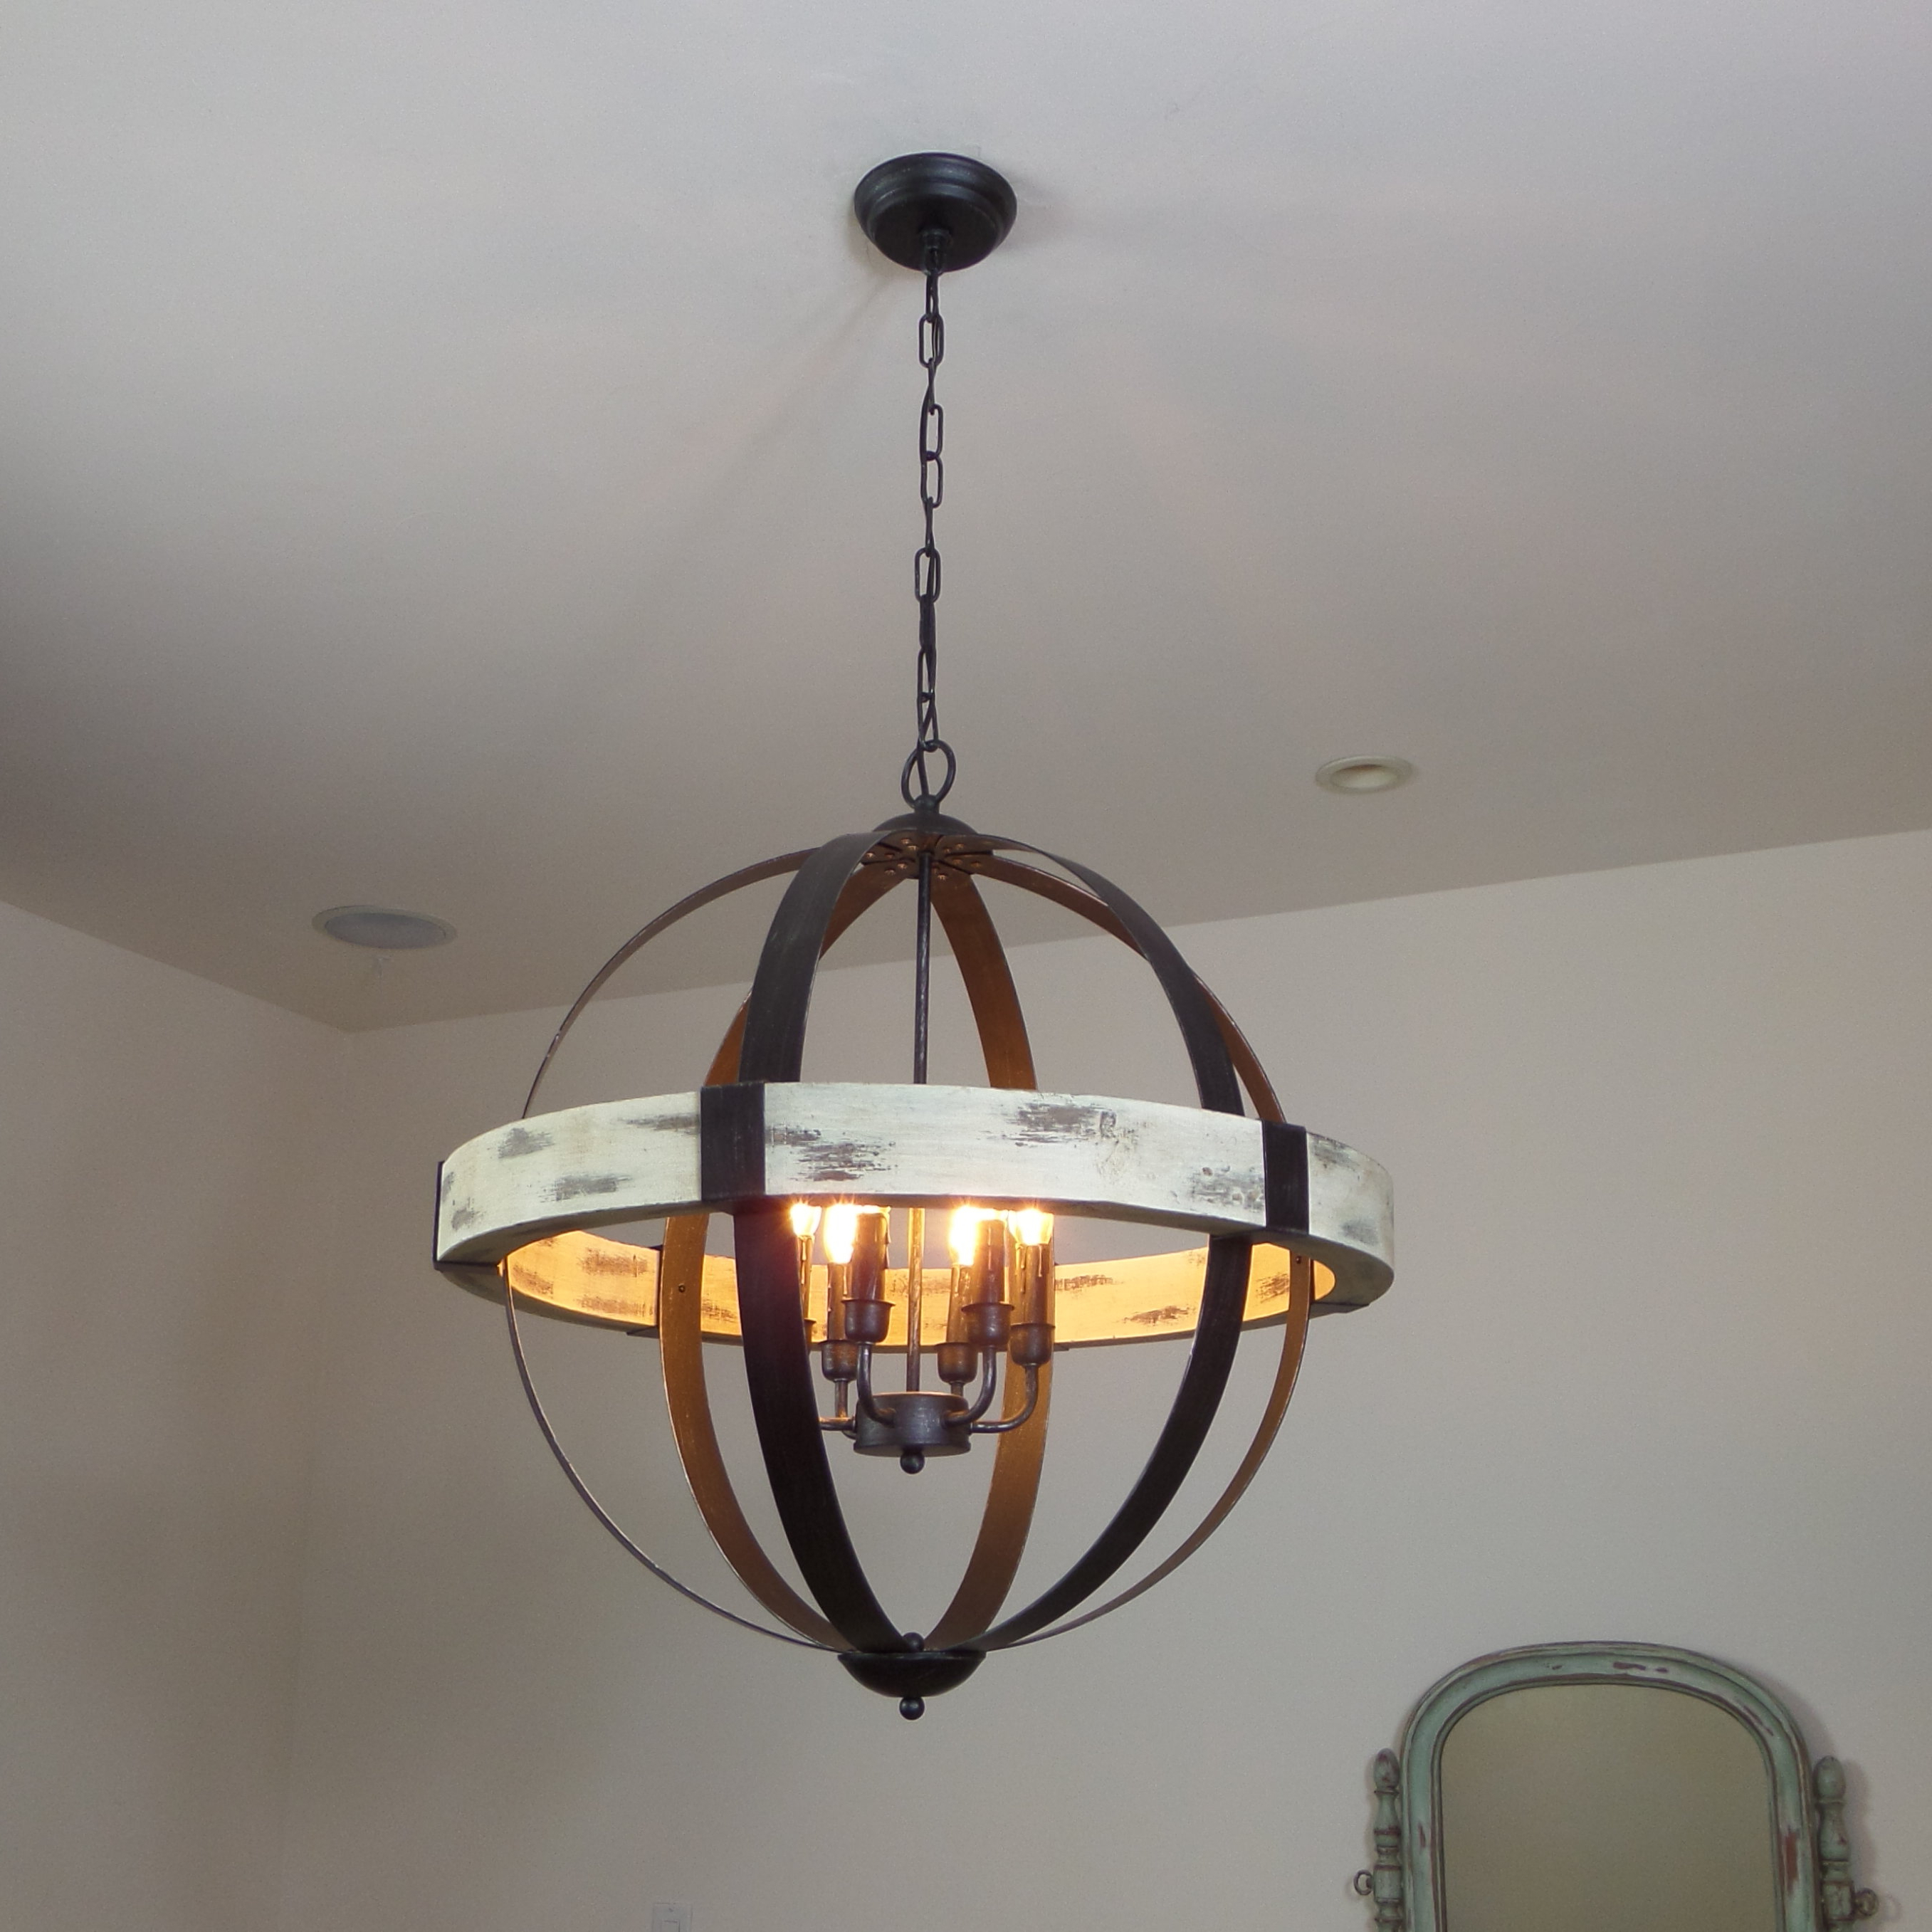 Current Cannella 6 Light Globe Chandelier Regarding Donna 6 Light Globe Chandeliers (View 11 of 20)